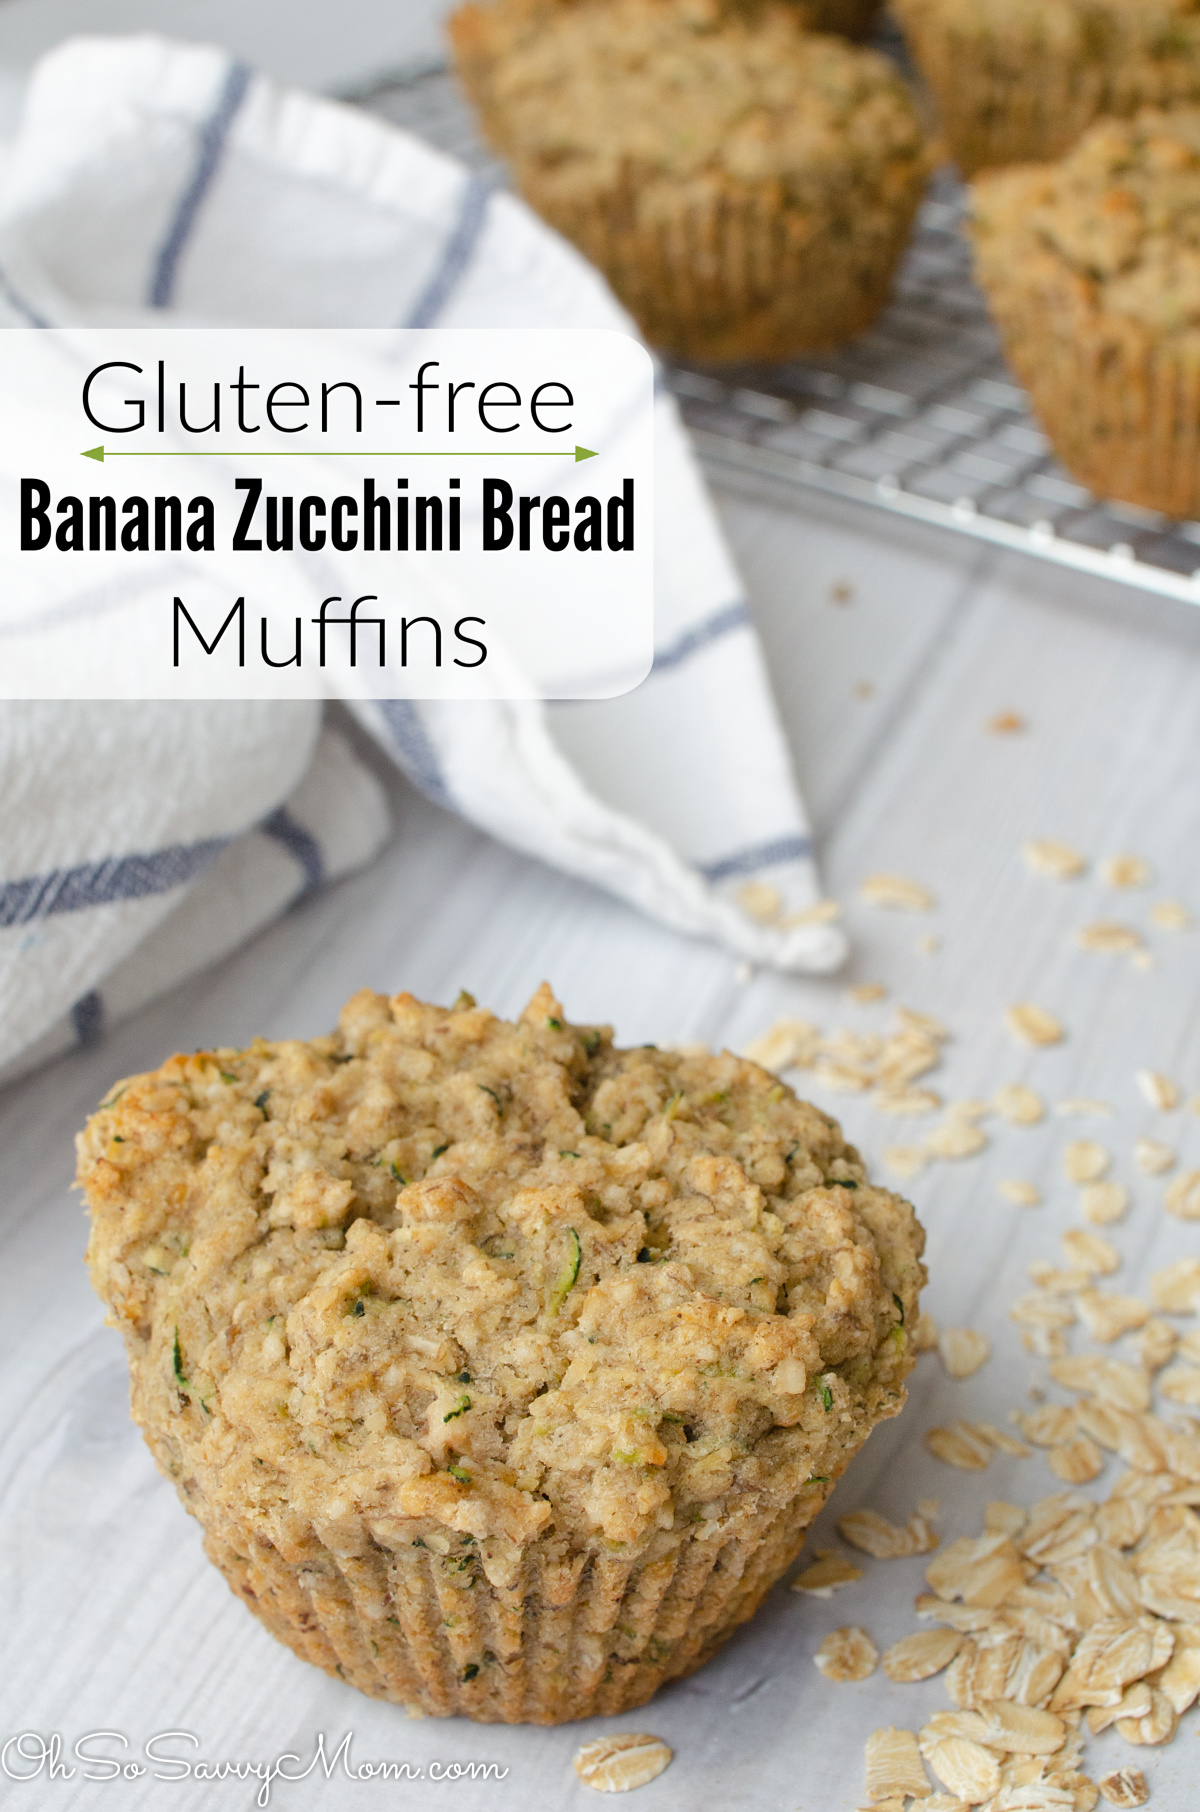 Great for school lunch, snack at home, or dessert. These Banana Zucchini Bread Muffins are #glutenfree, dairy-free, egg-free, nut-free, and low in added sugar! #recipe #baking #allergyfriendly